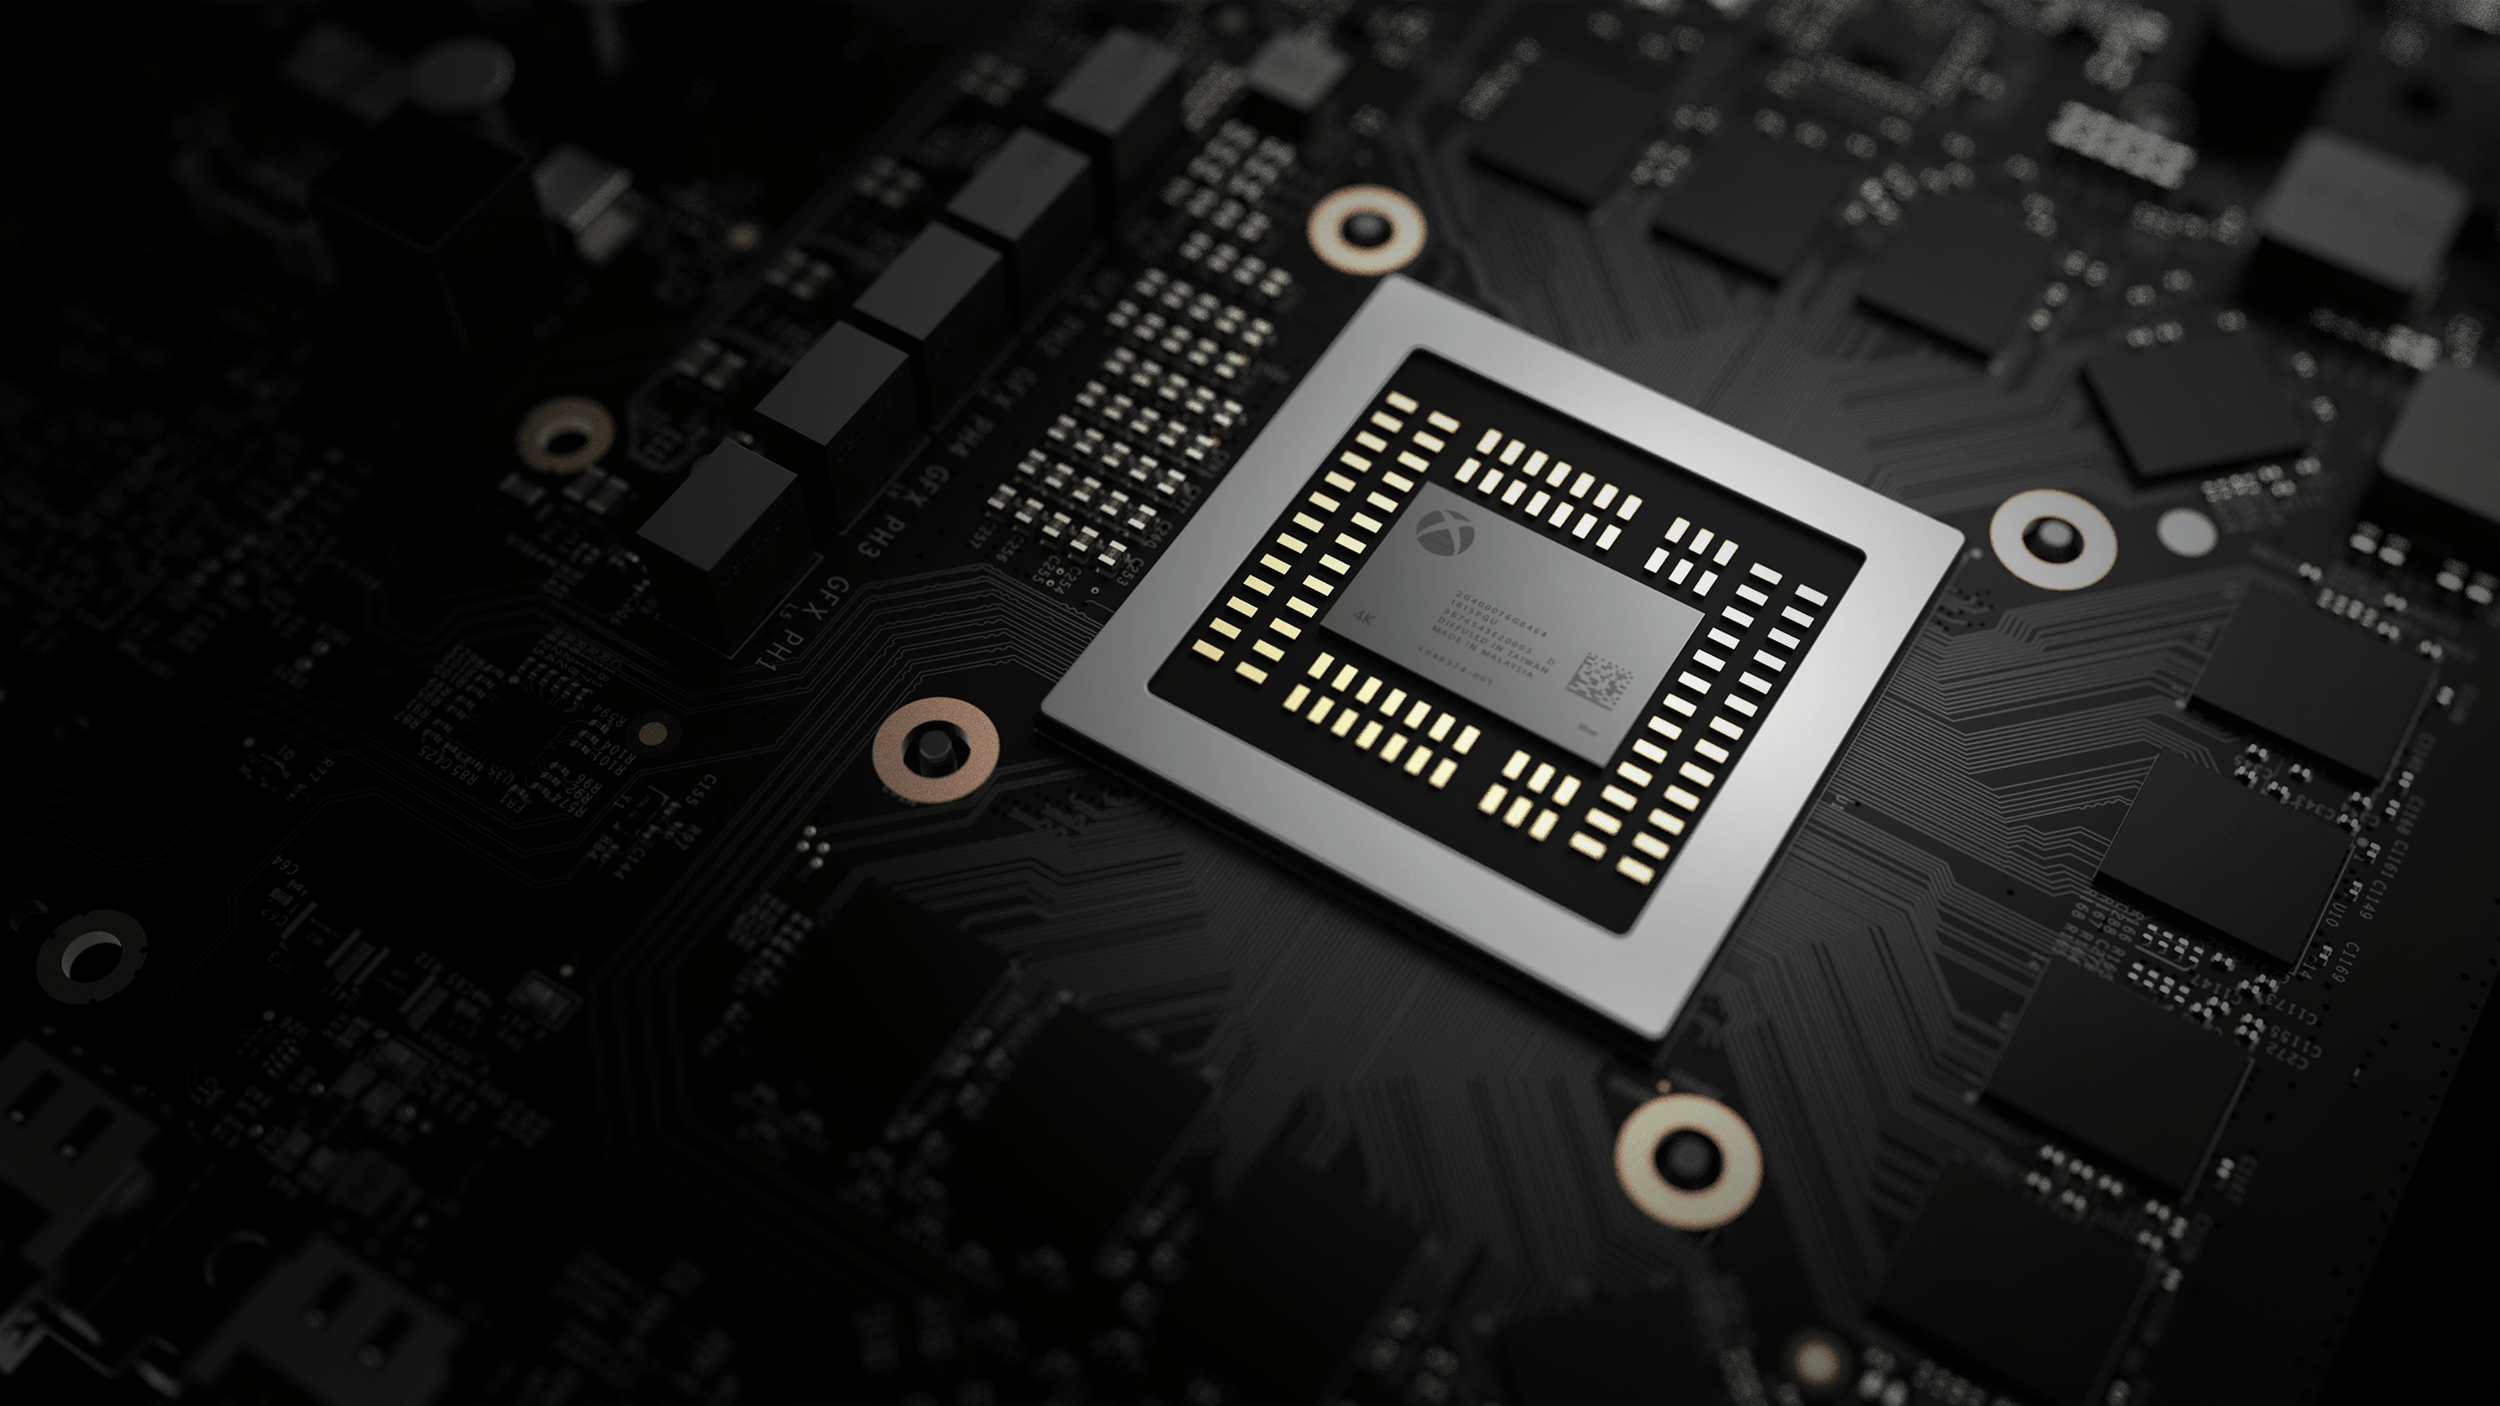 Somehow, Xbox Scorpio has Exceeded Phil Spencer's Expectations